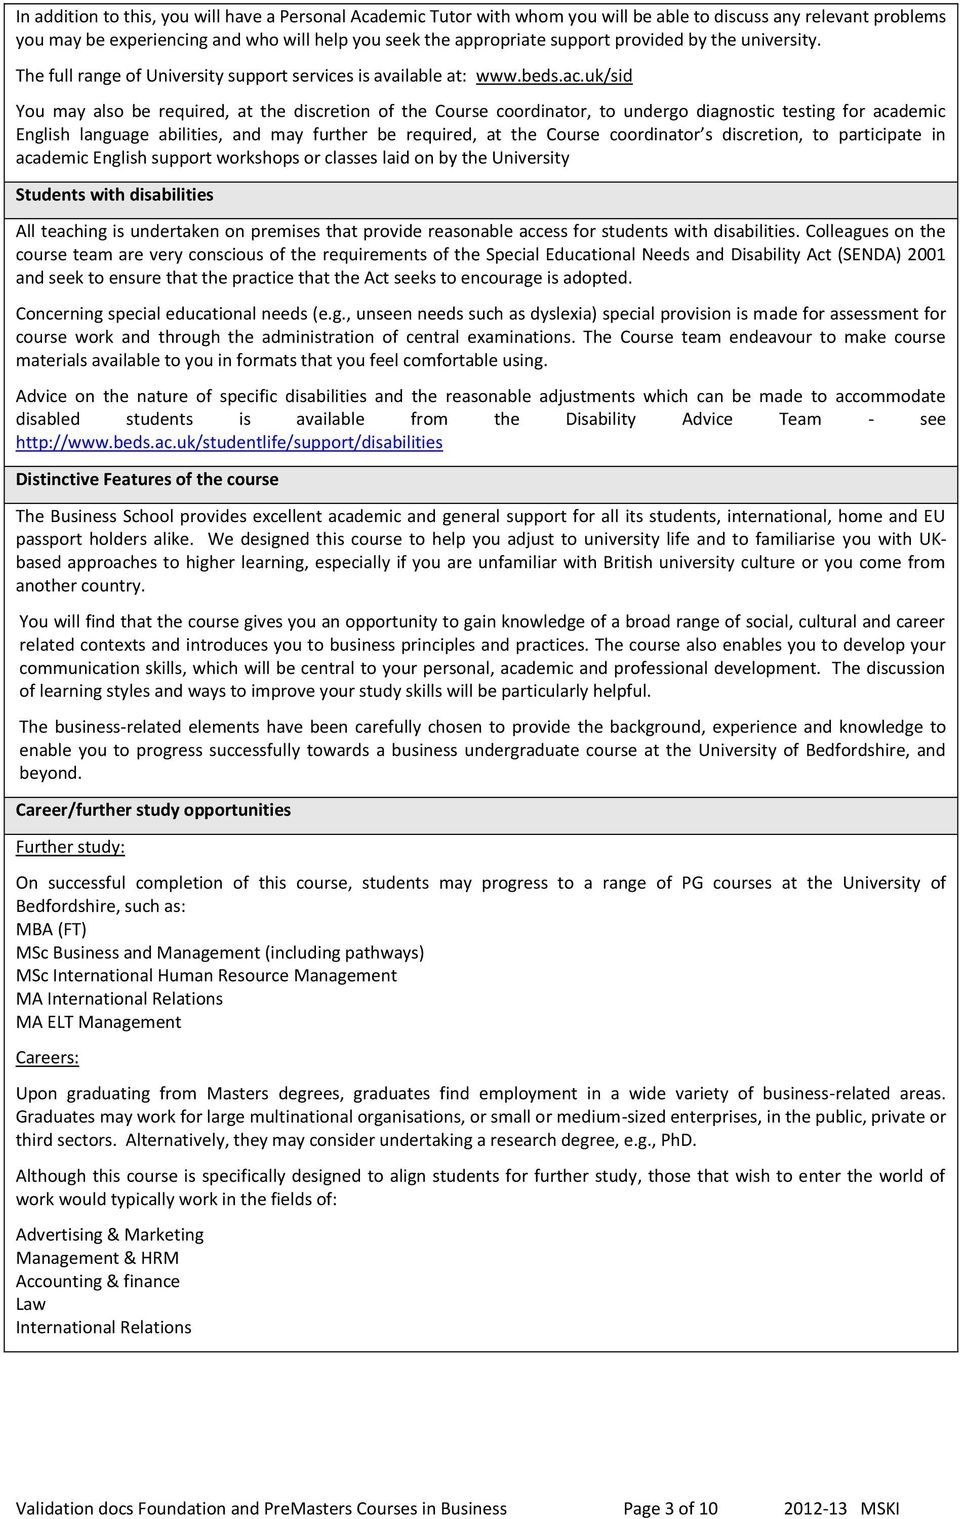 uk/sid You may also be required, at the discretion of the Course coordinator, to undergo diagnostic testing for academic English language abilities, and may further be required, at the Course